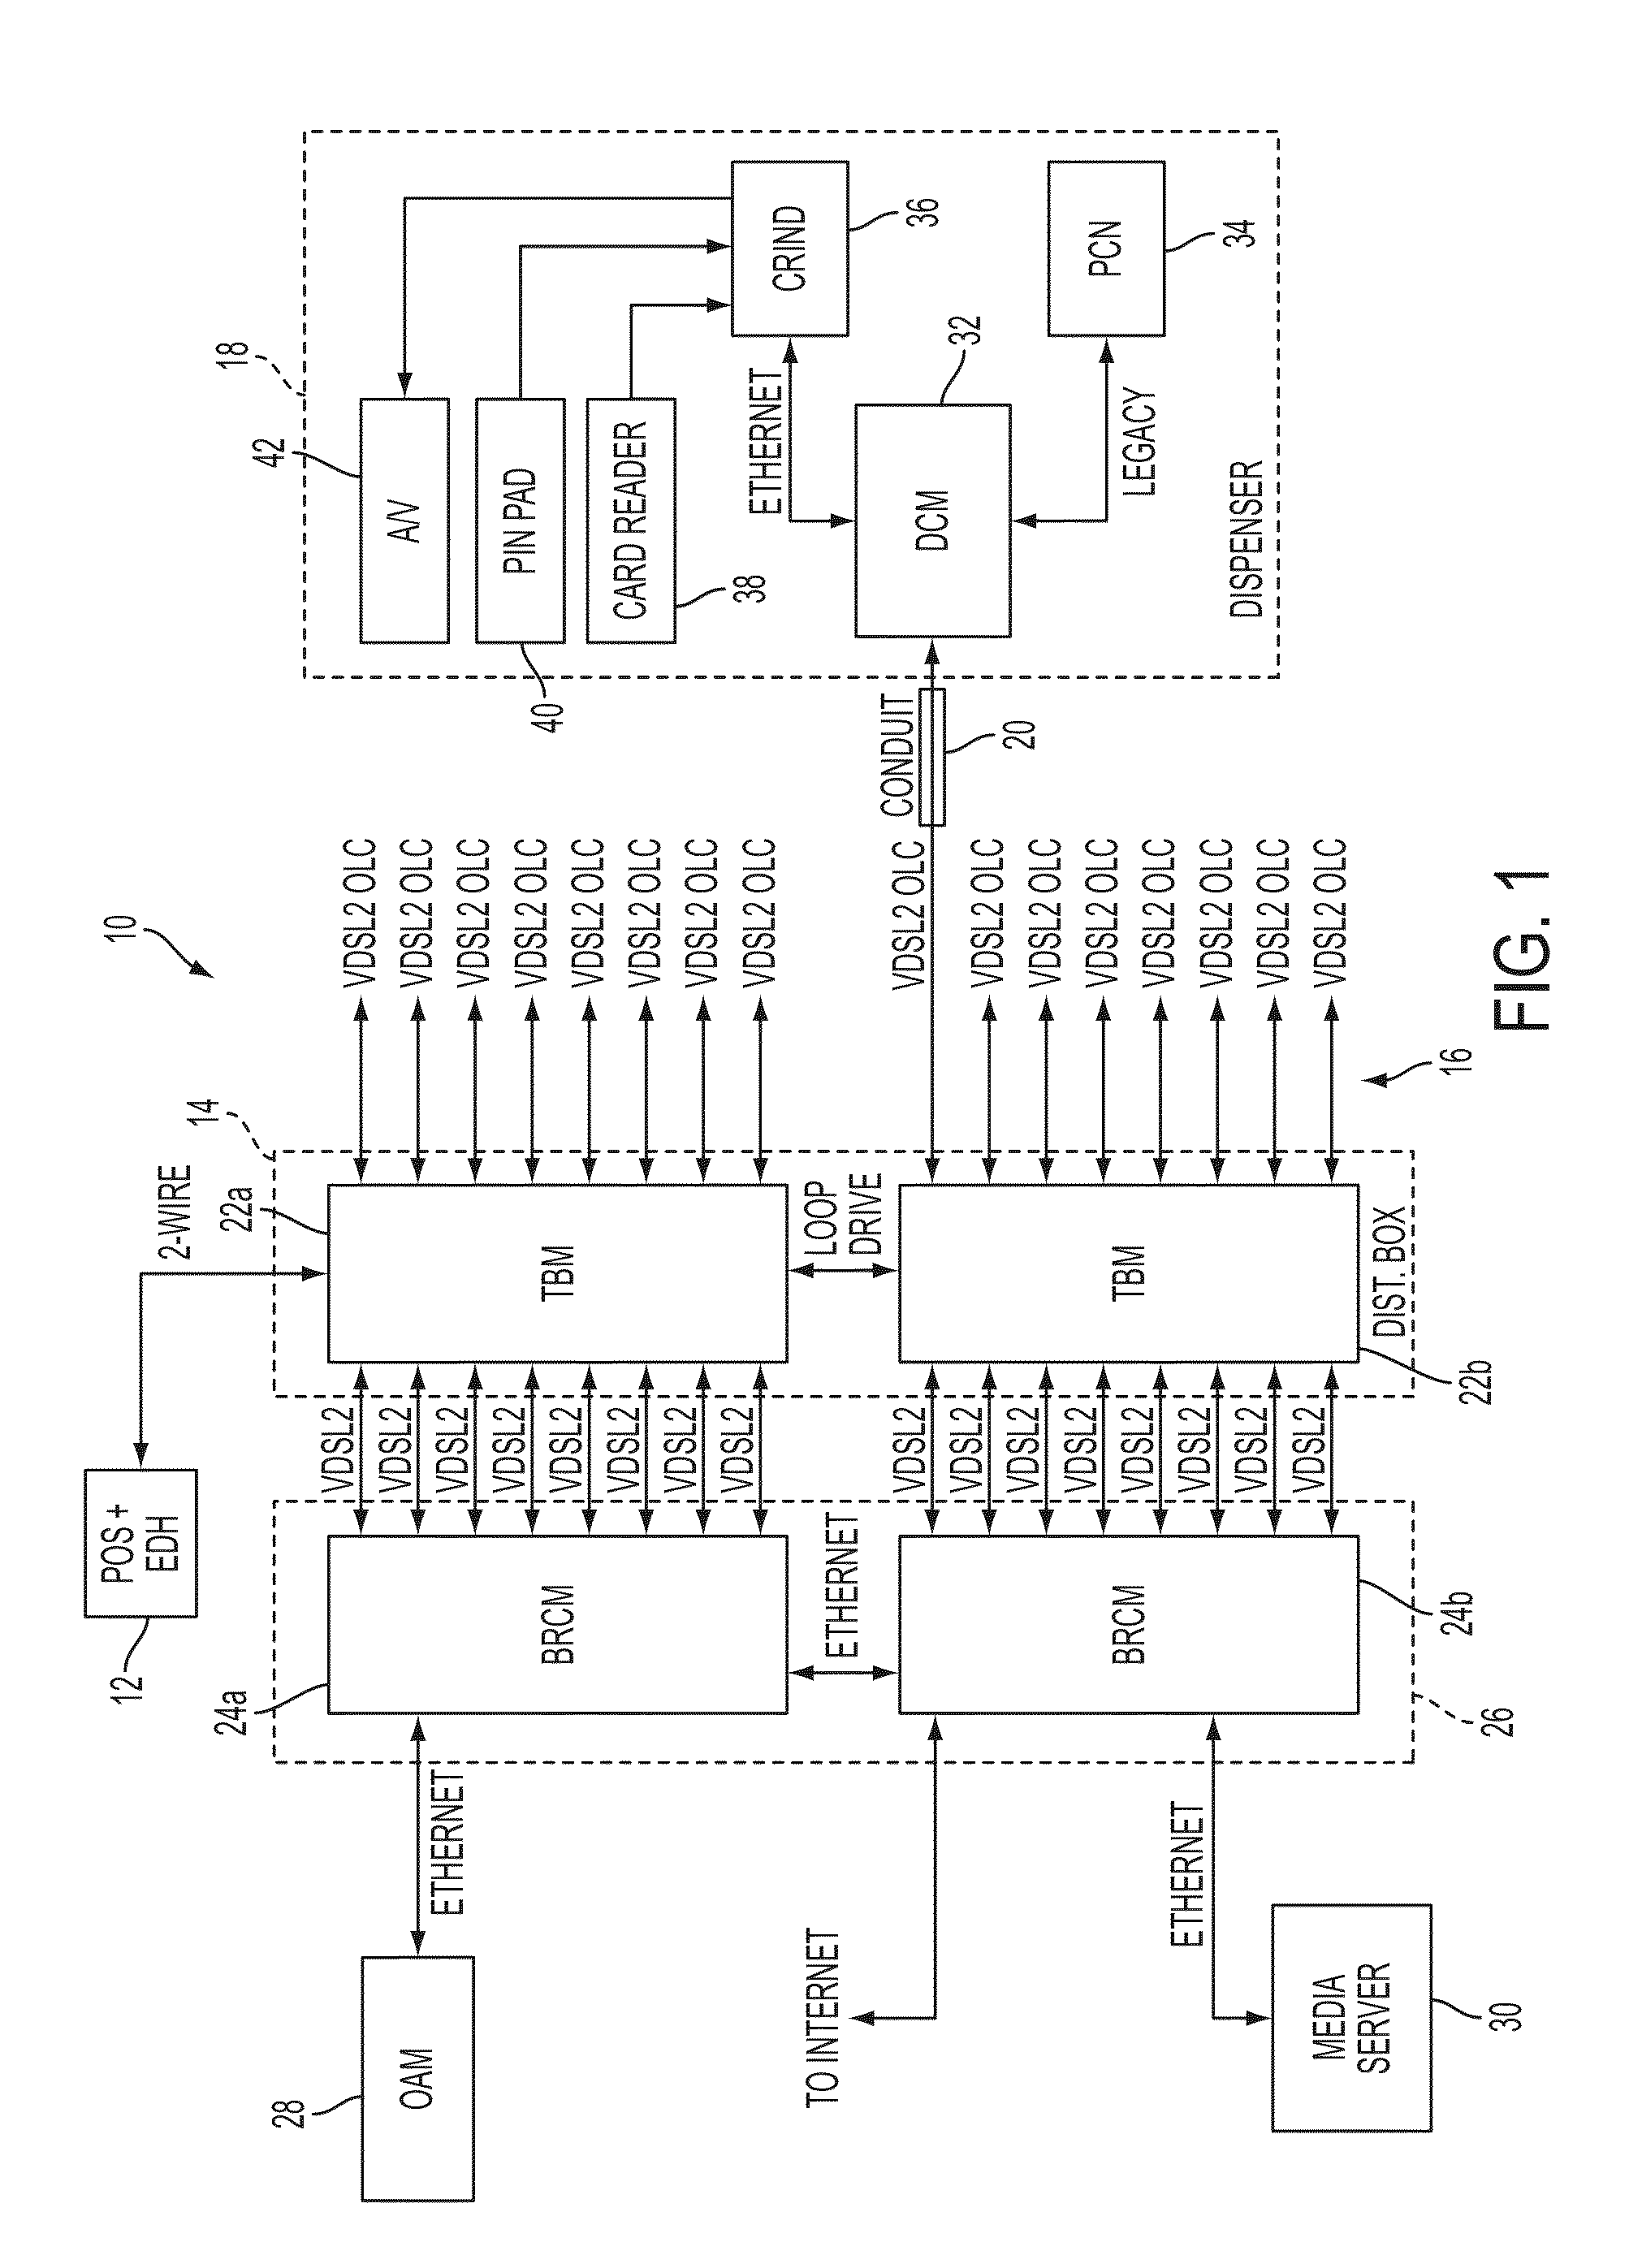 US20130121428A1 20130516 D00001 patent us20130121428 fuel dispensing environment utilizing gilbarco advantage wiring diagram at n-0.co